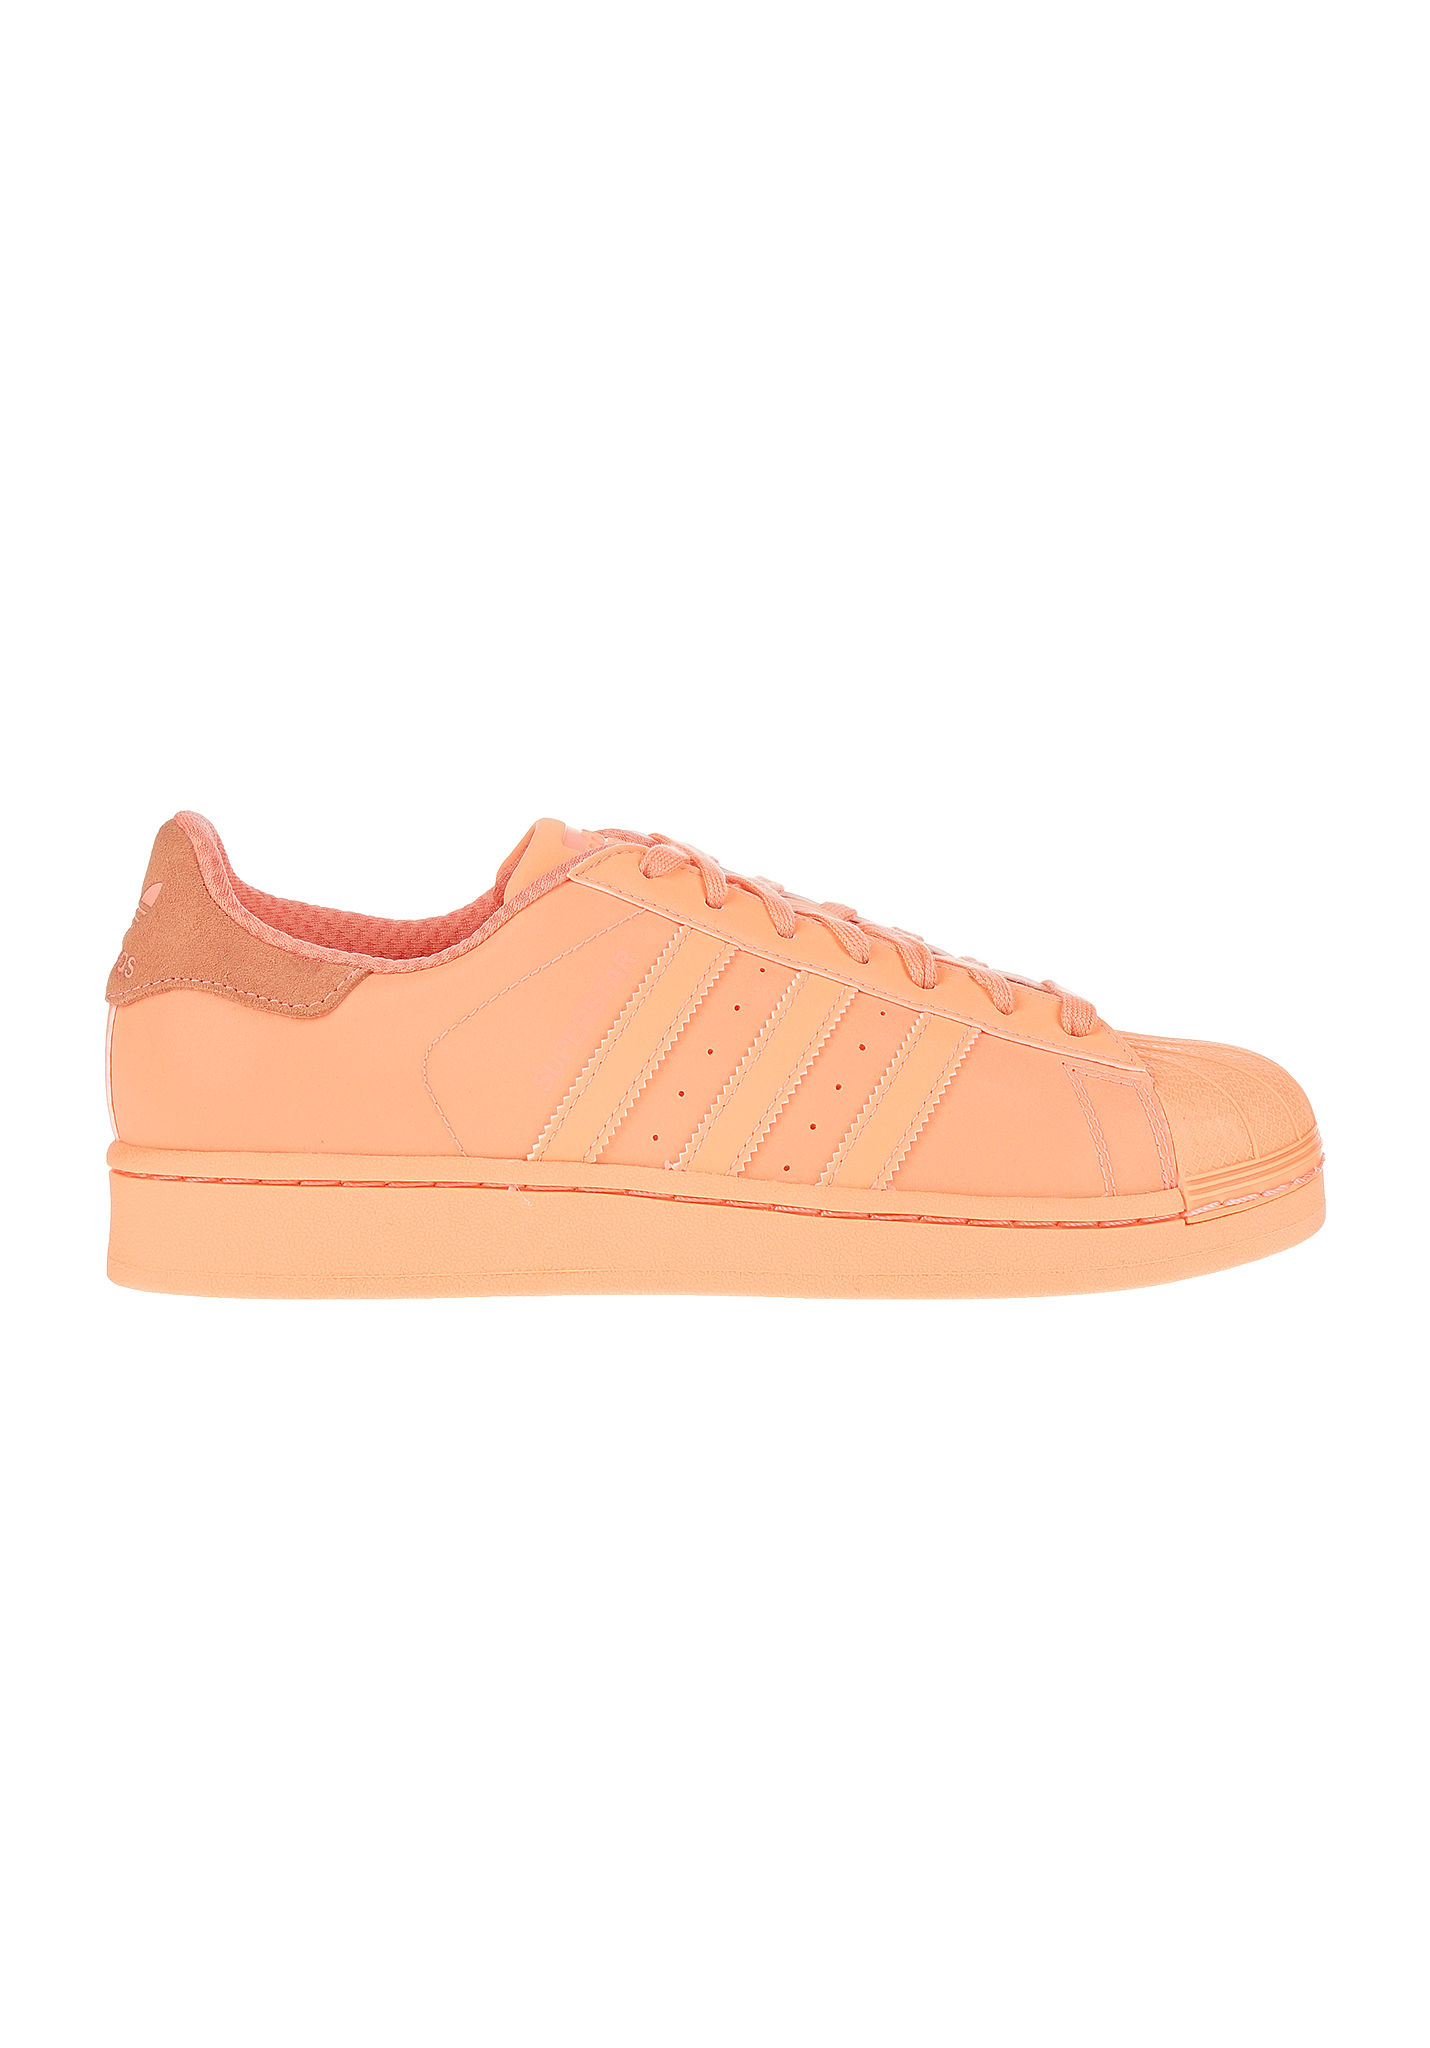 adidas adicolor superstar